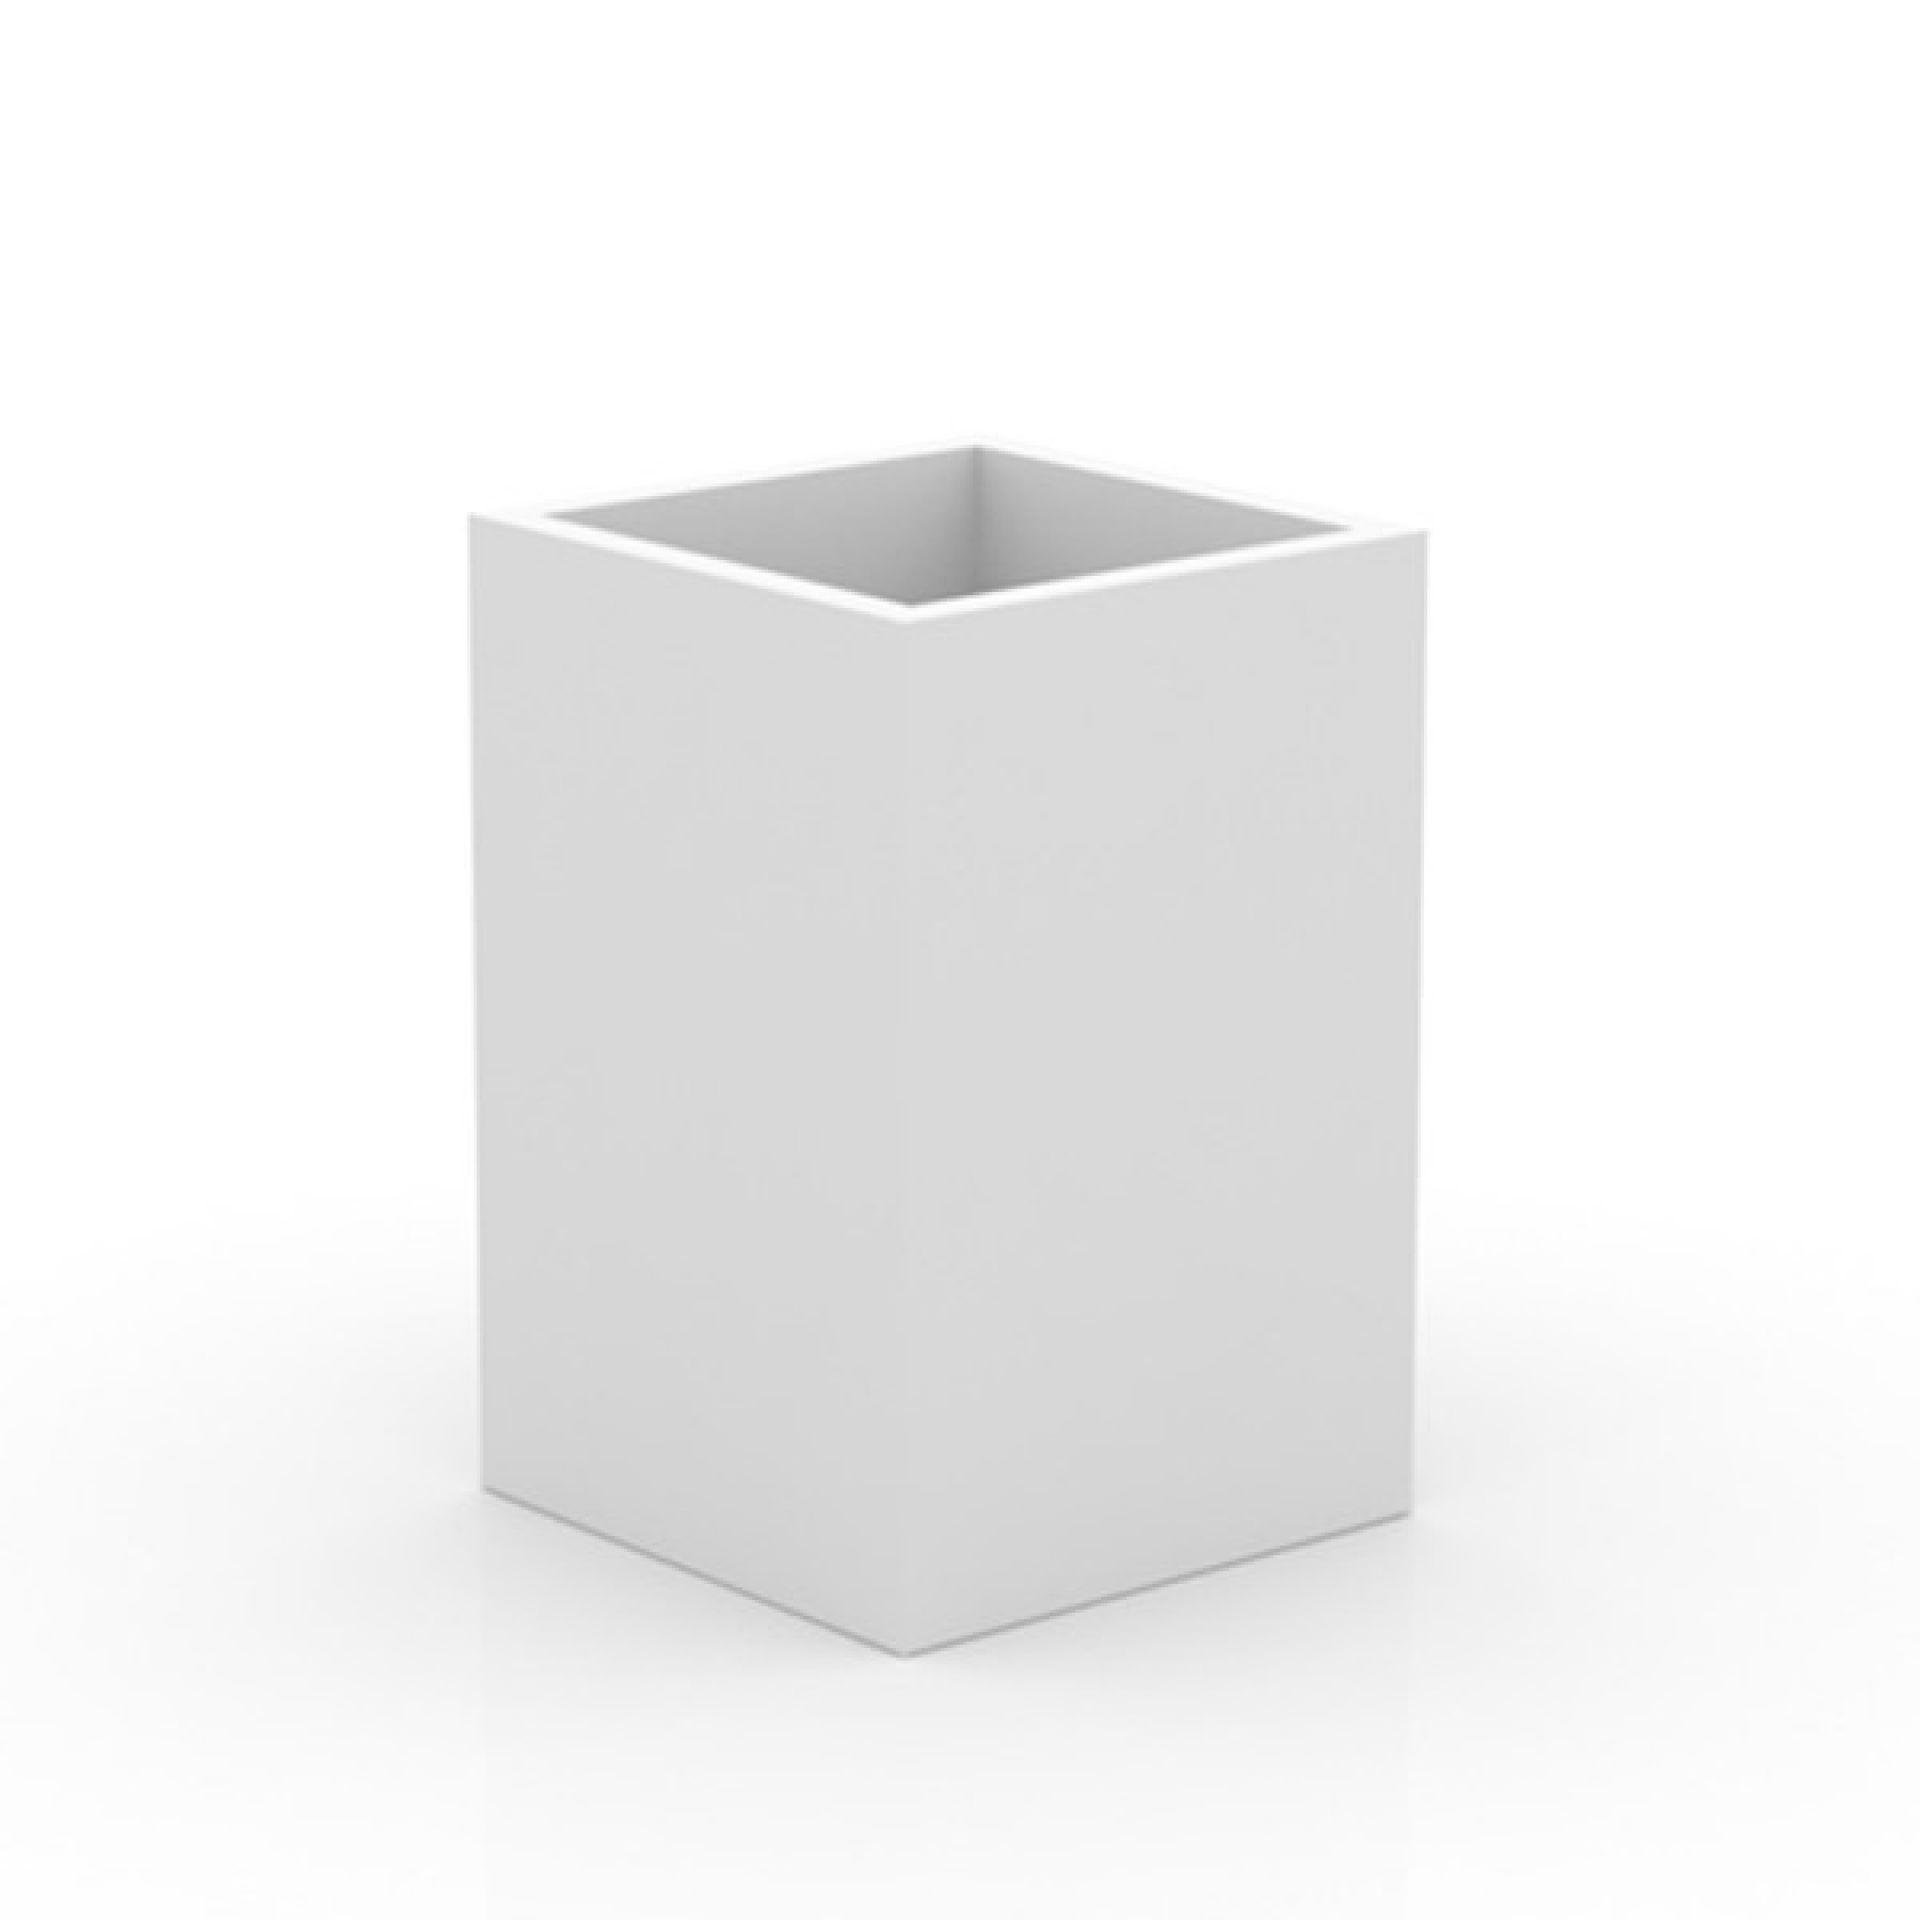 CUBE TOP IN WHITE LLDPE RESIN, RESISTANT TO UVI AND EXTREME TEMPERATURES